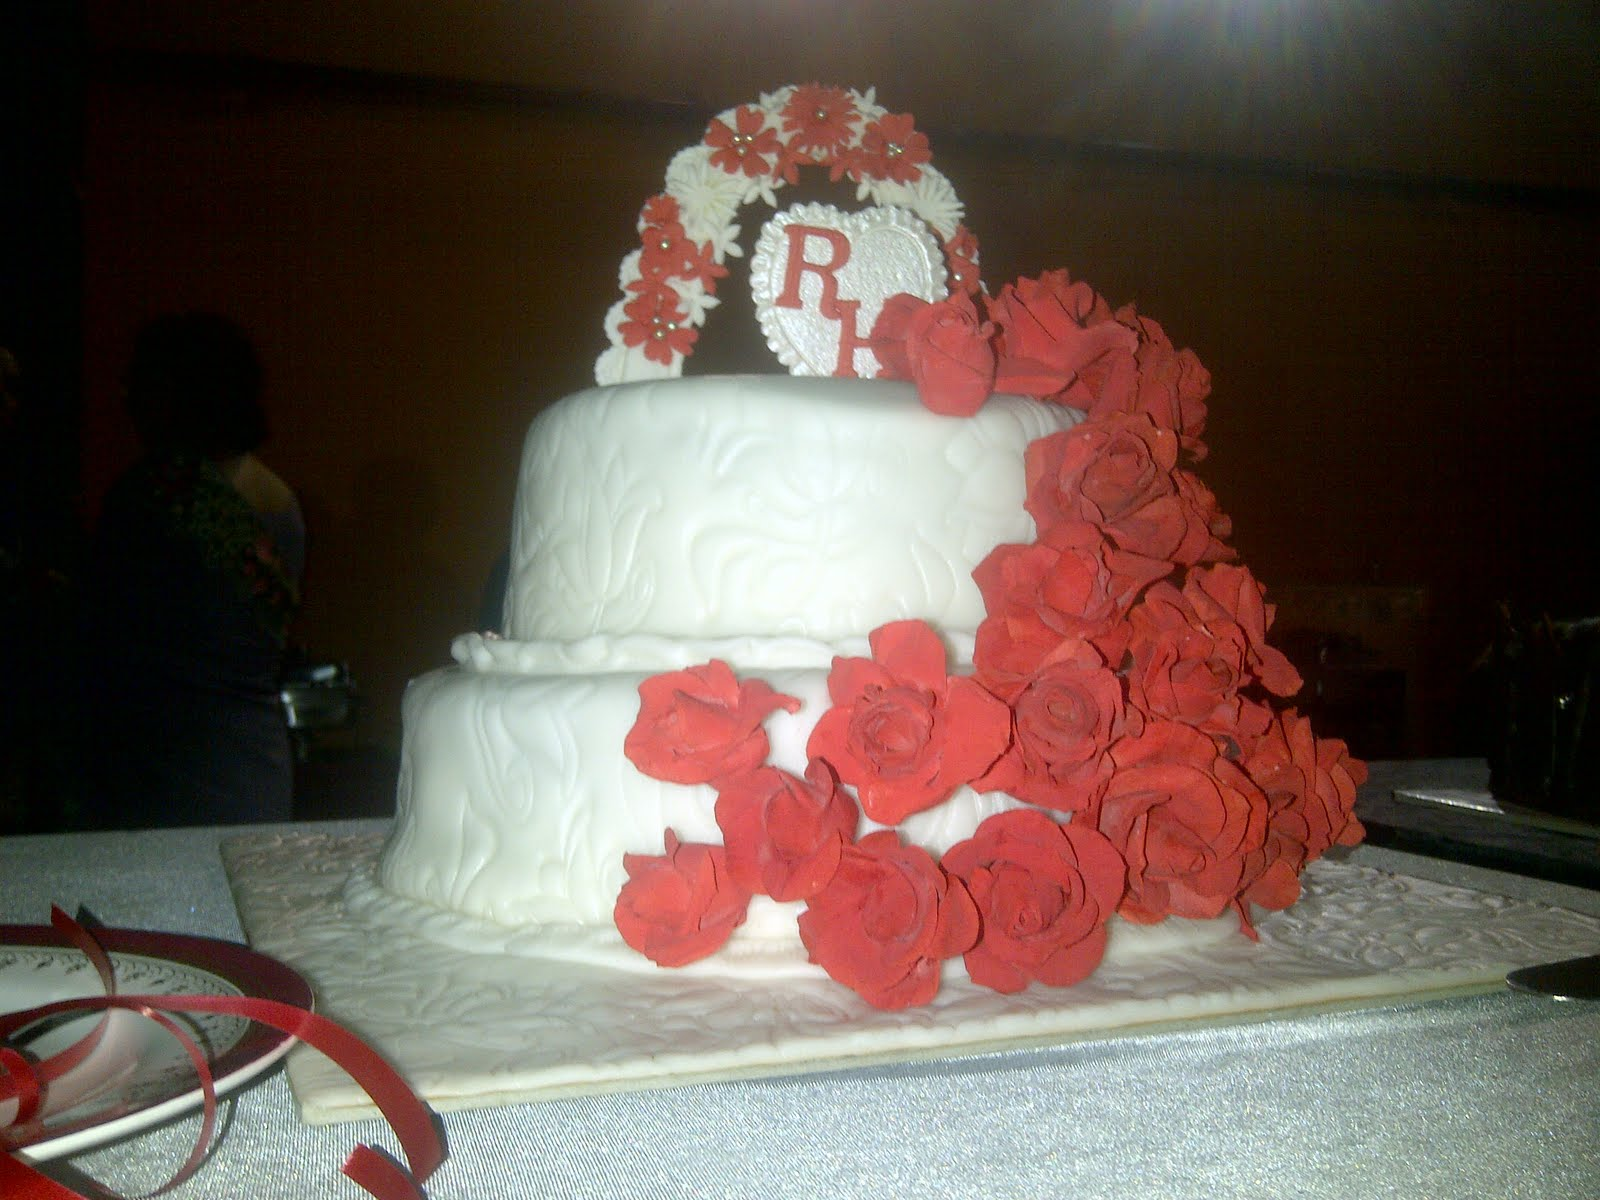 This was for a Ruby Wedding, theme colour was white & redhave